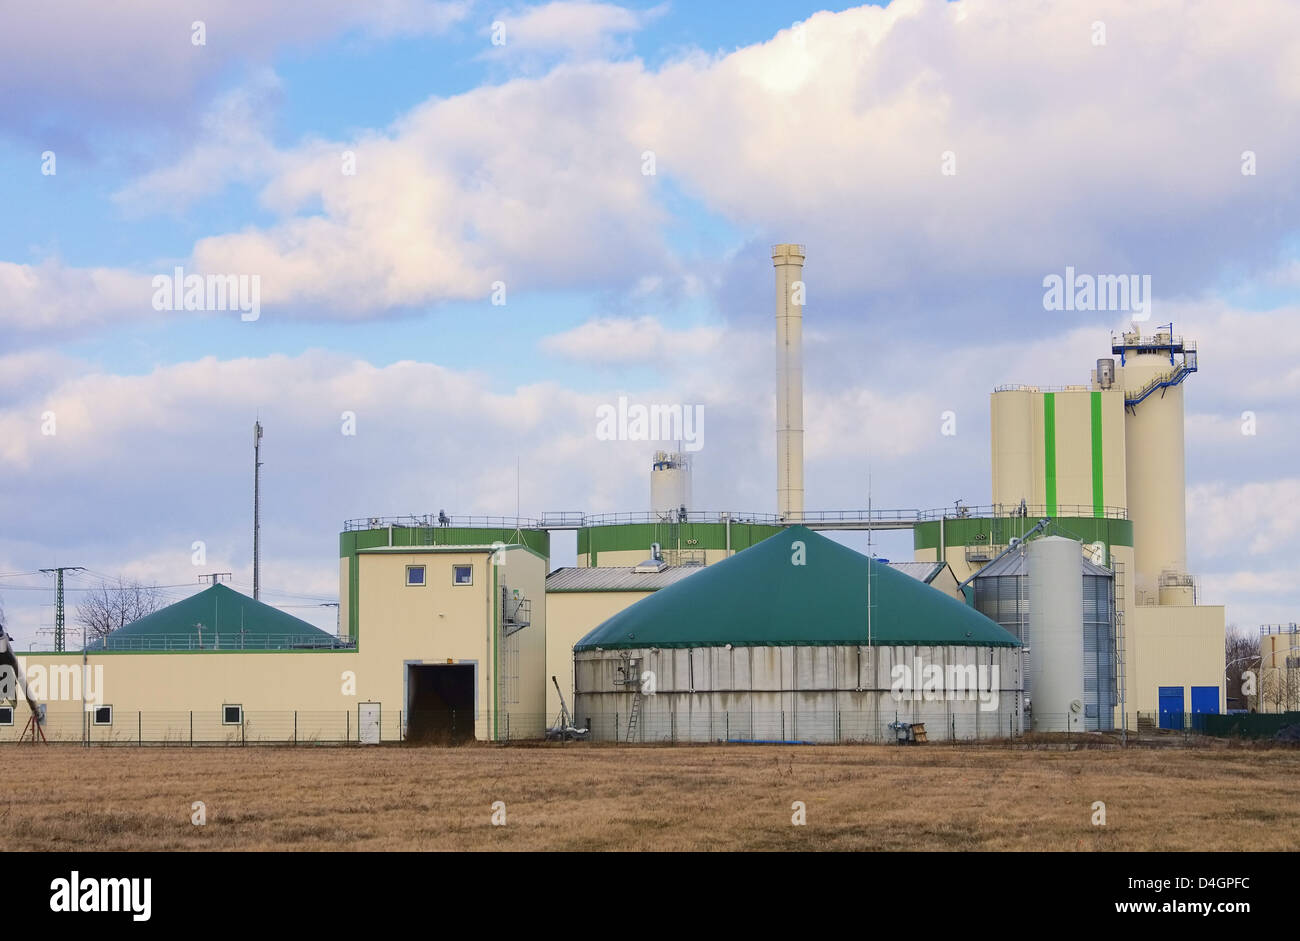 Biogasanlage - biogas plant 86 Stock Photo